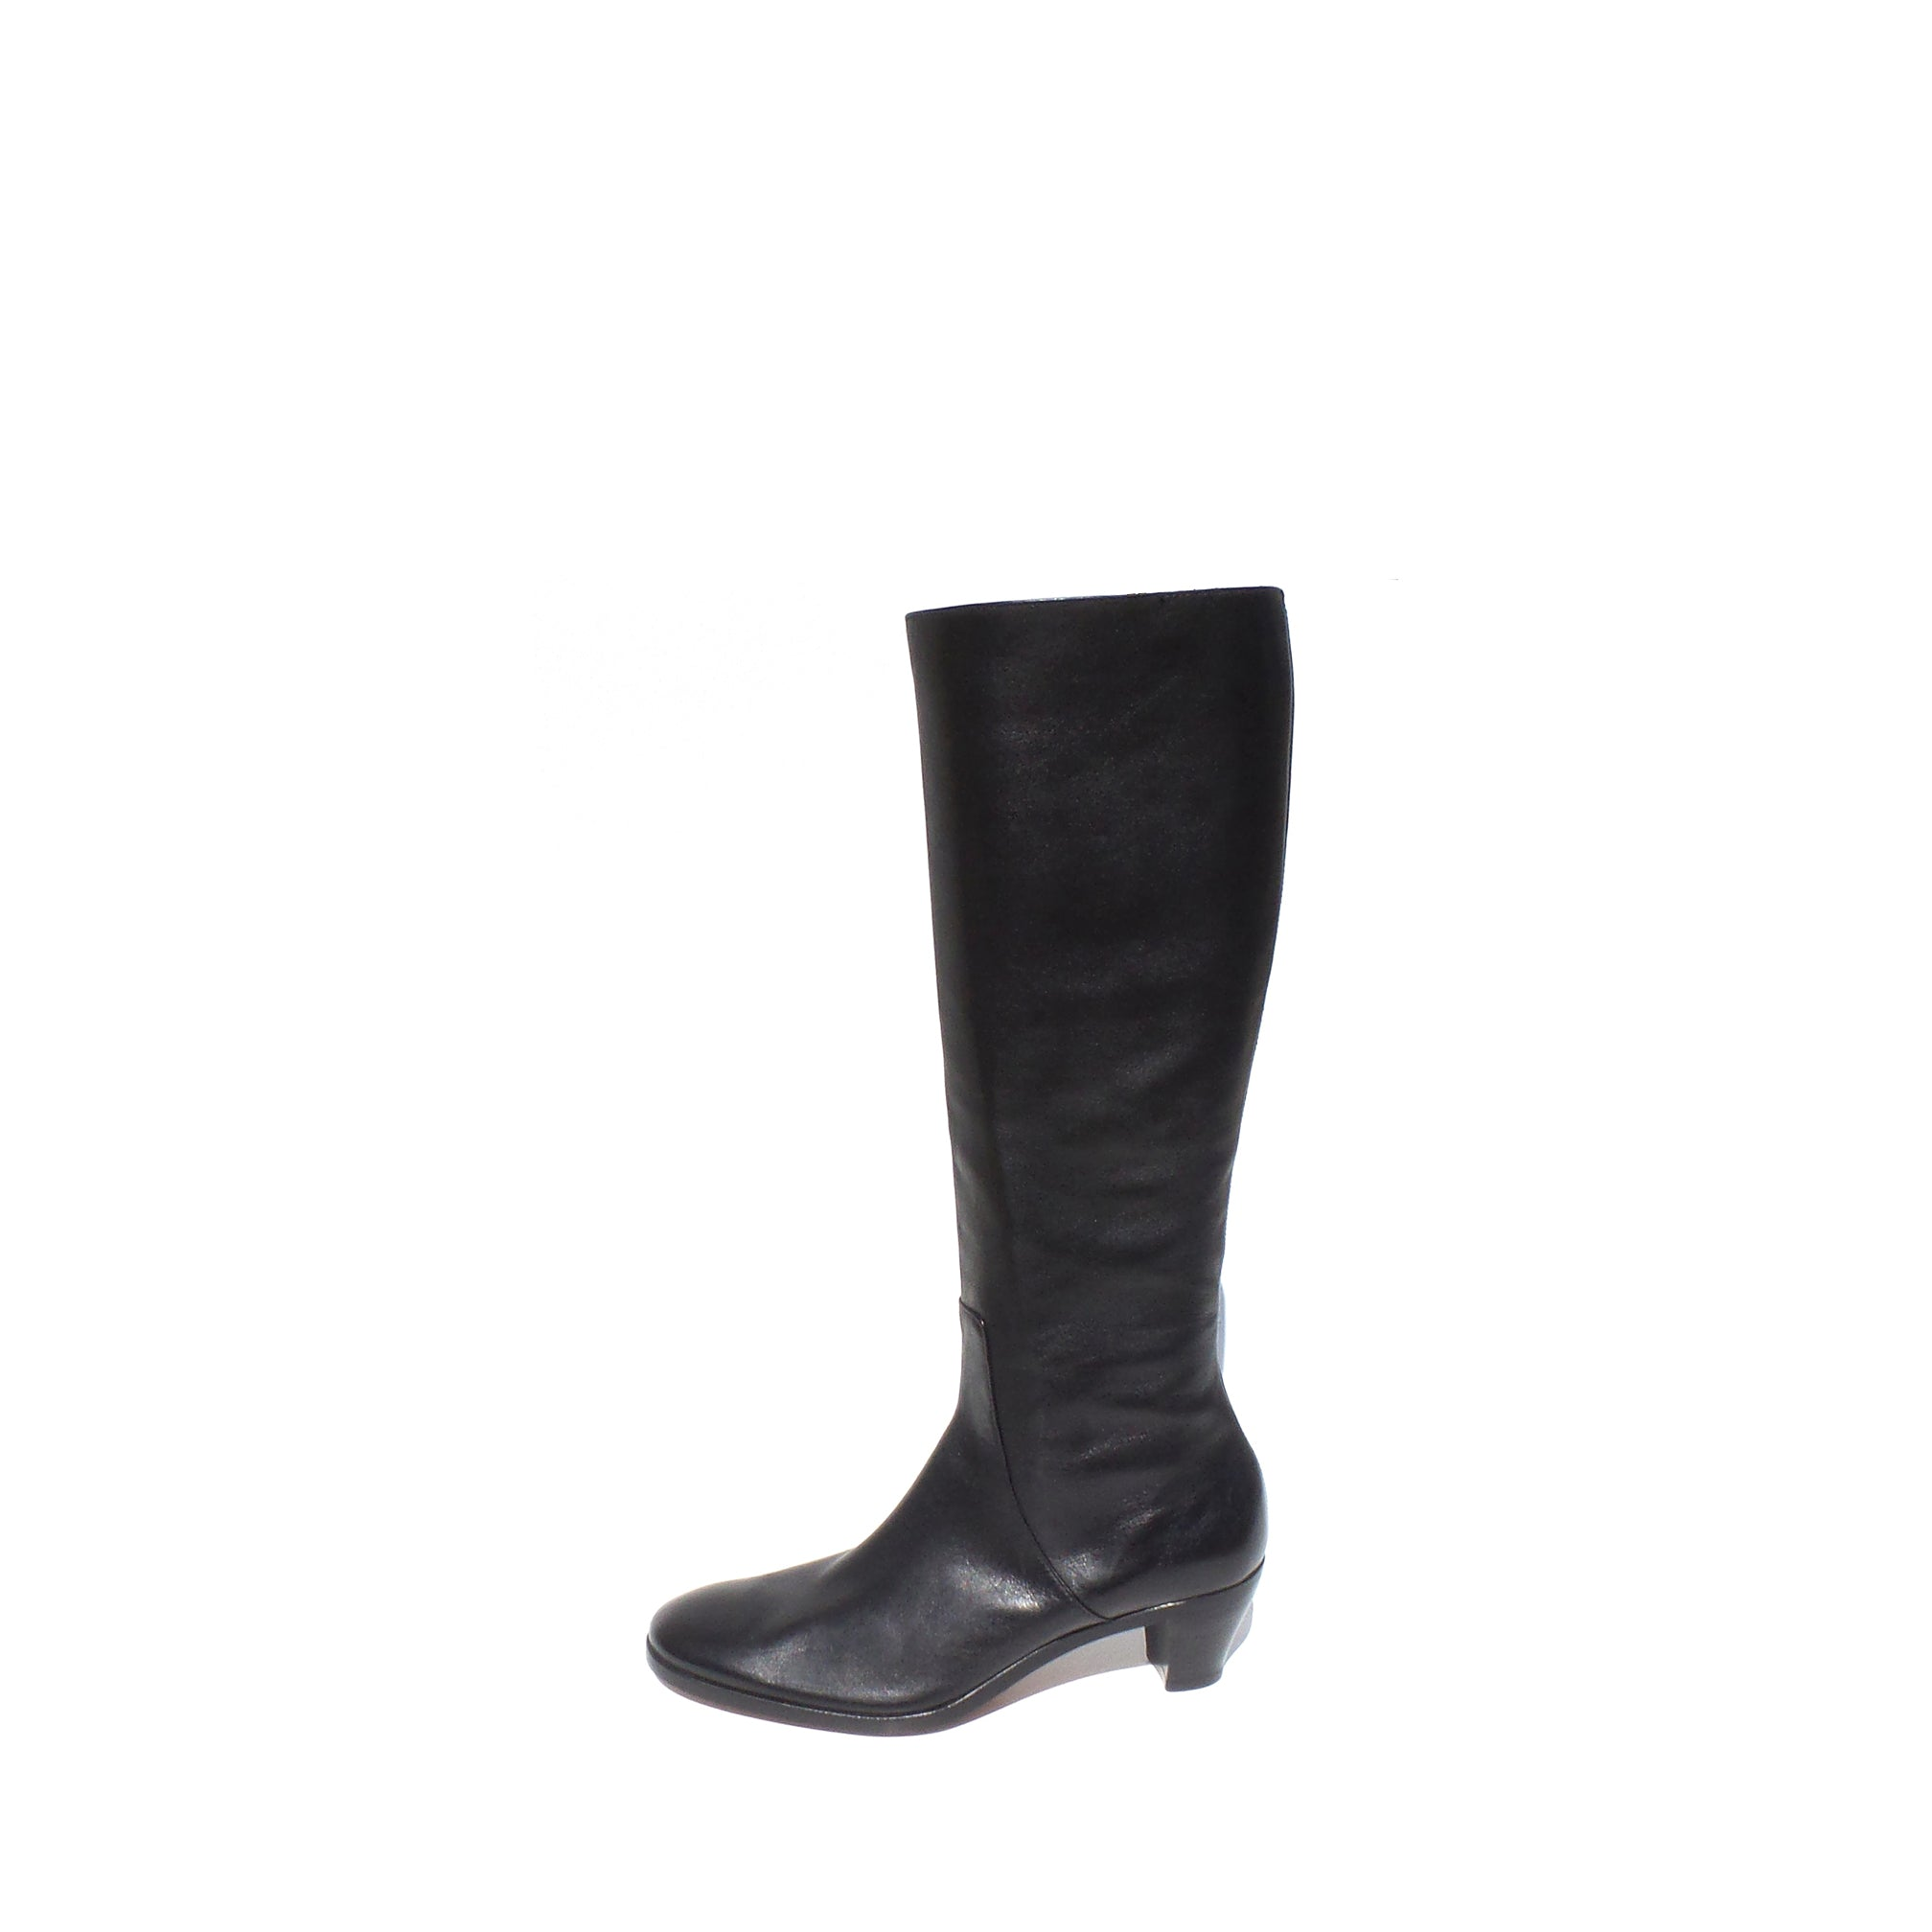 928af62d68b GRAVATI Italy Black Leather Side Zip Stacked Block Heel Knee Boots 7.5 –  Encore Resale.com